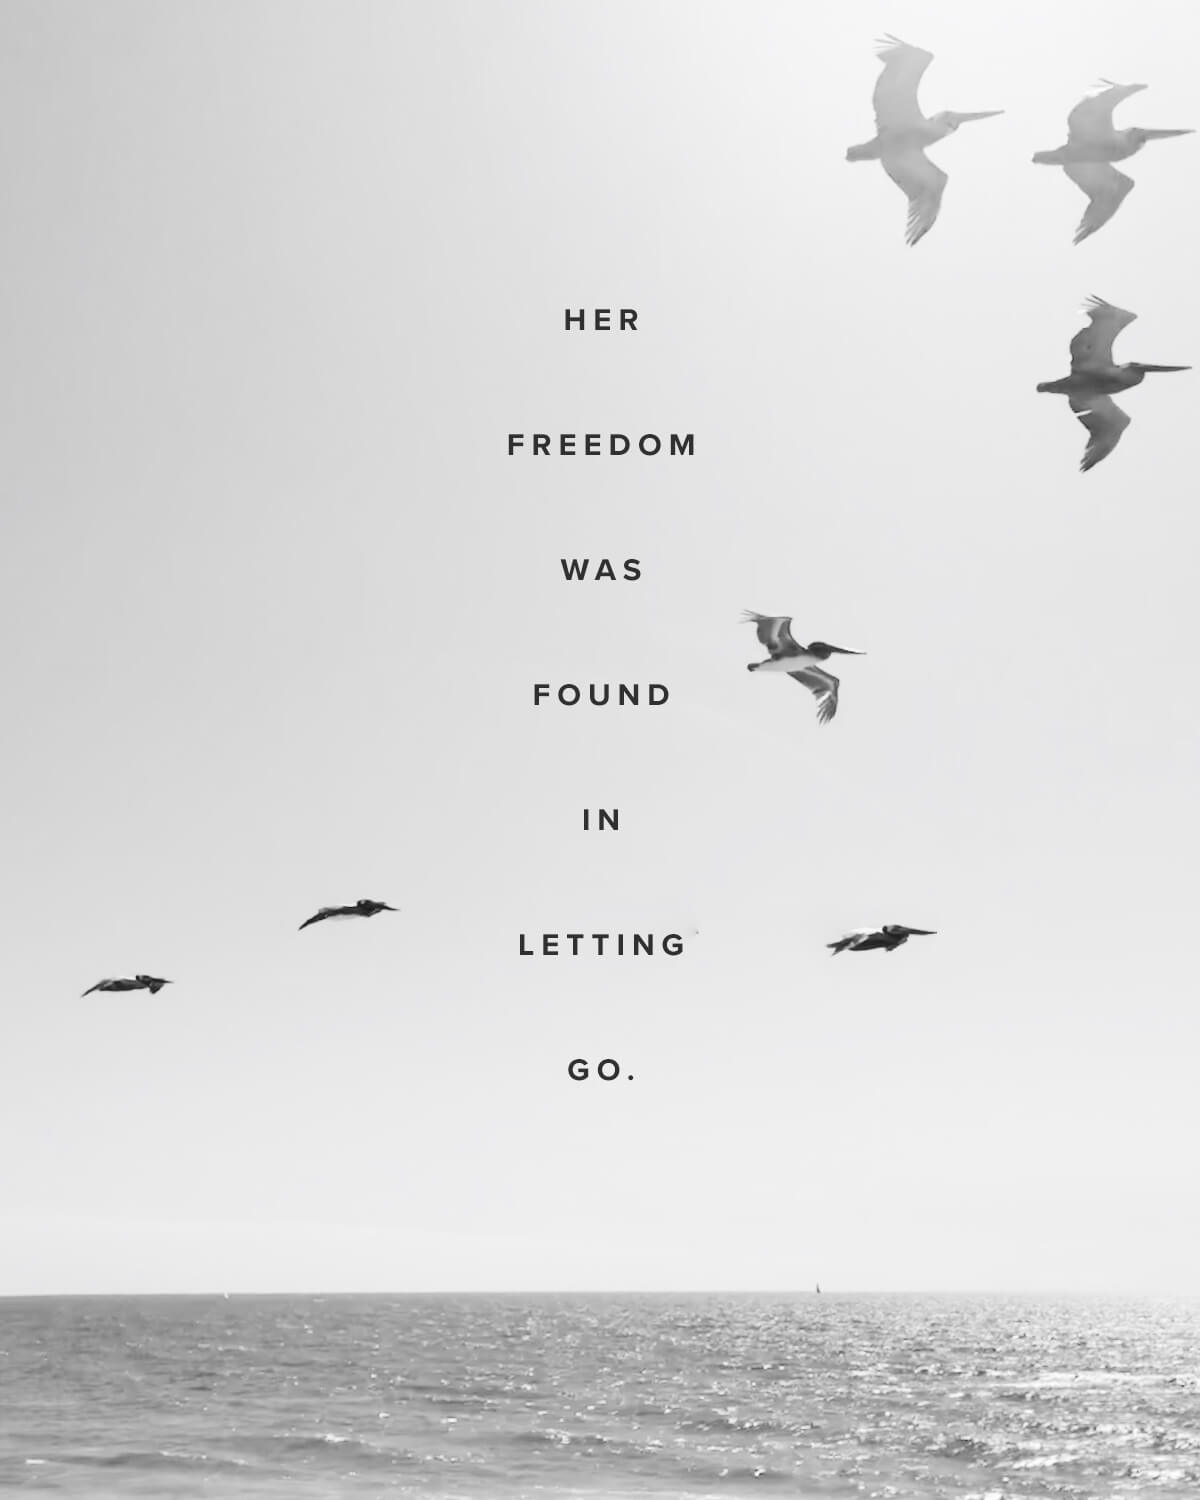 Her freedom was found in letting go